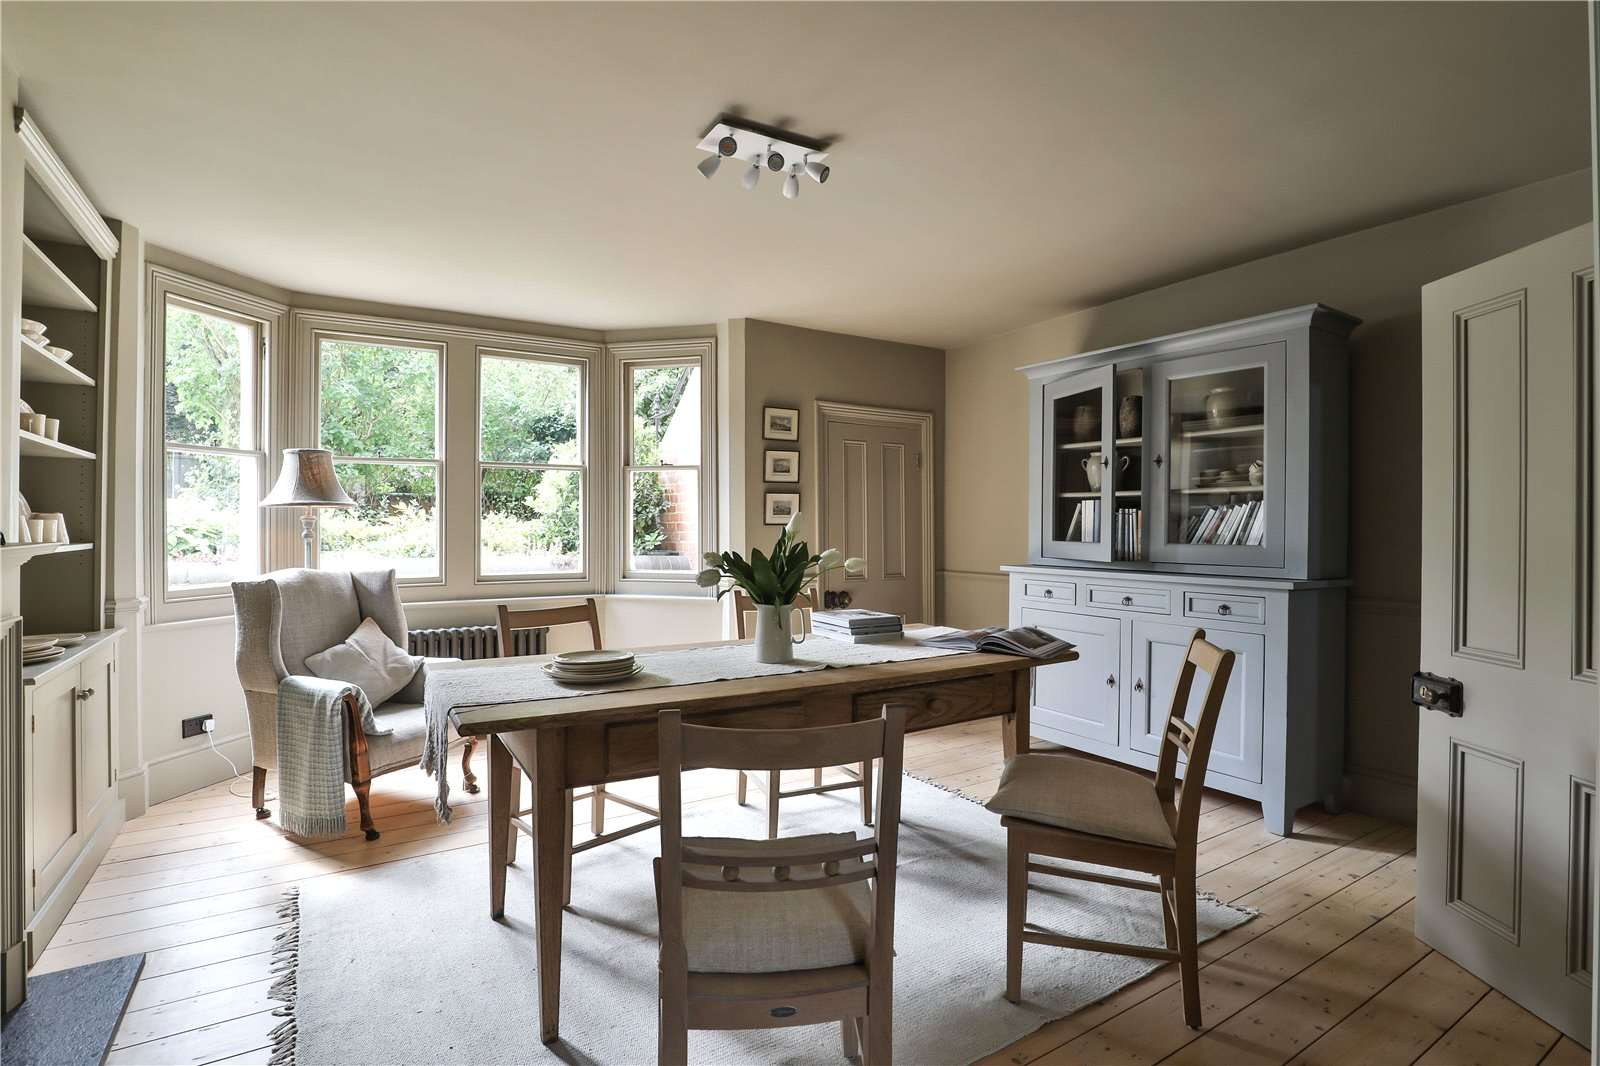 An elegantly-proportioned Victorian house on Woodstock Road in Oxford - Image Gallery 06 - Dining Room